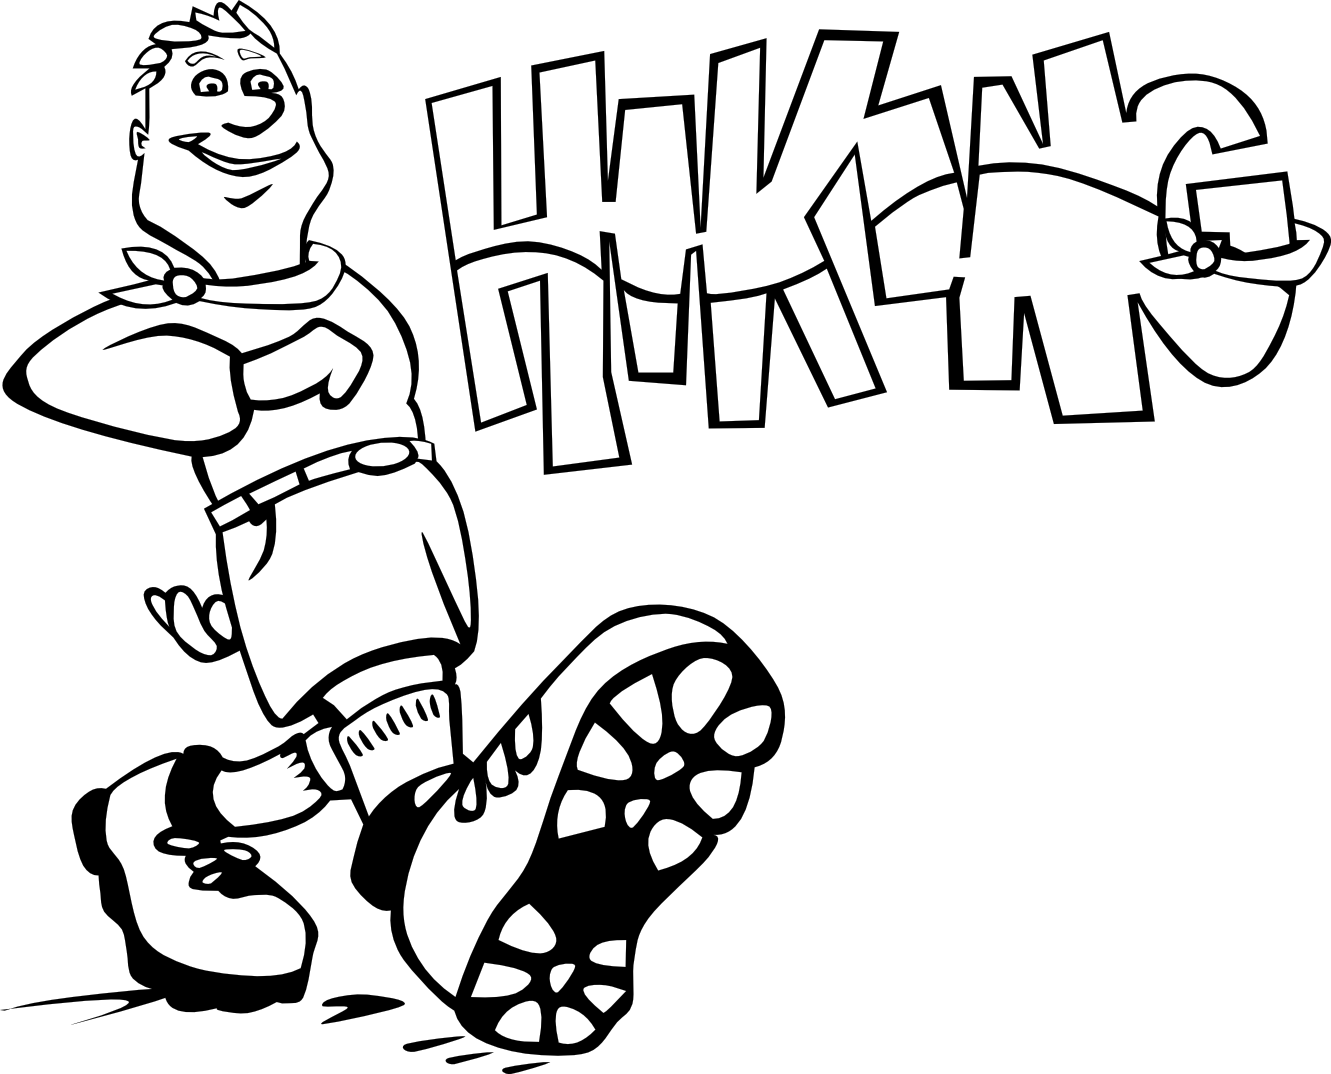 Mountain hiking clip art. Hike clipart hikinh